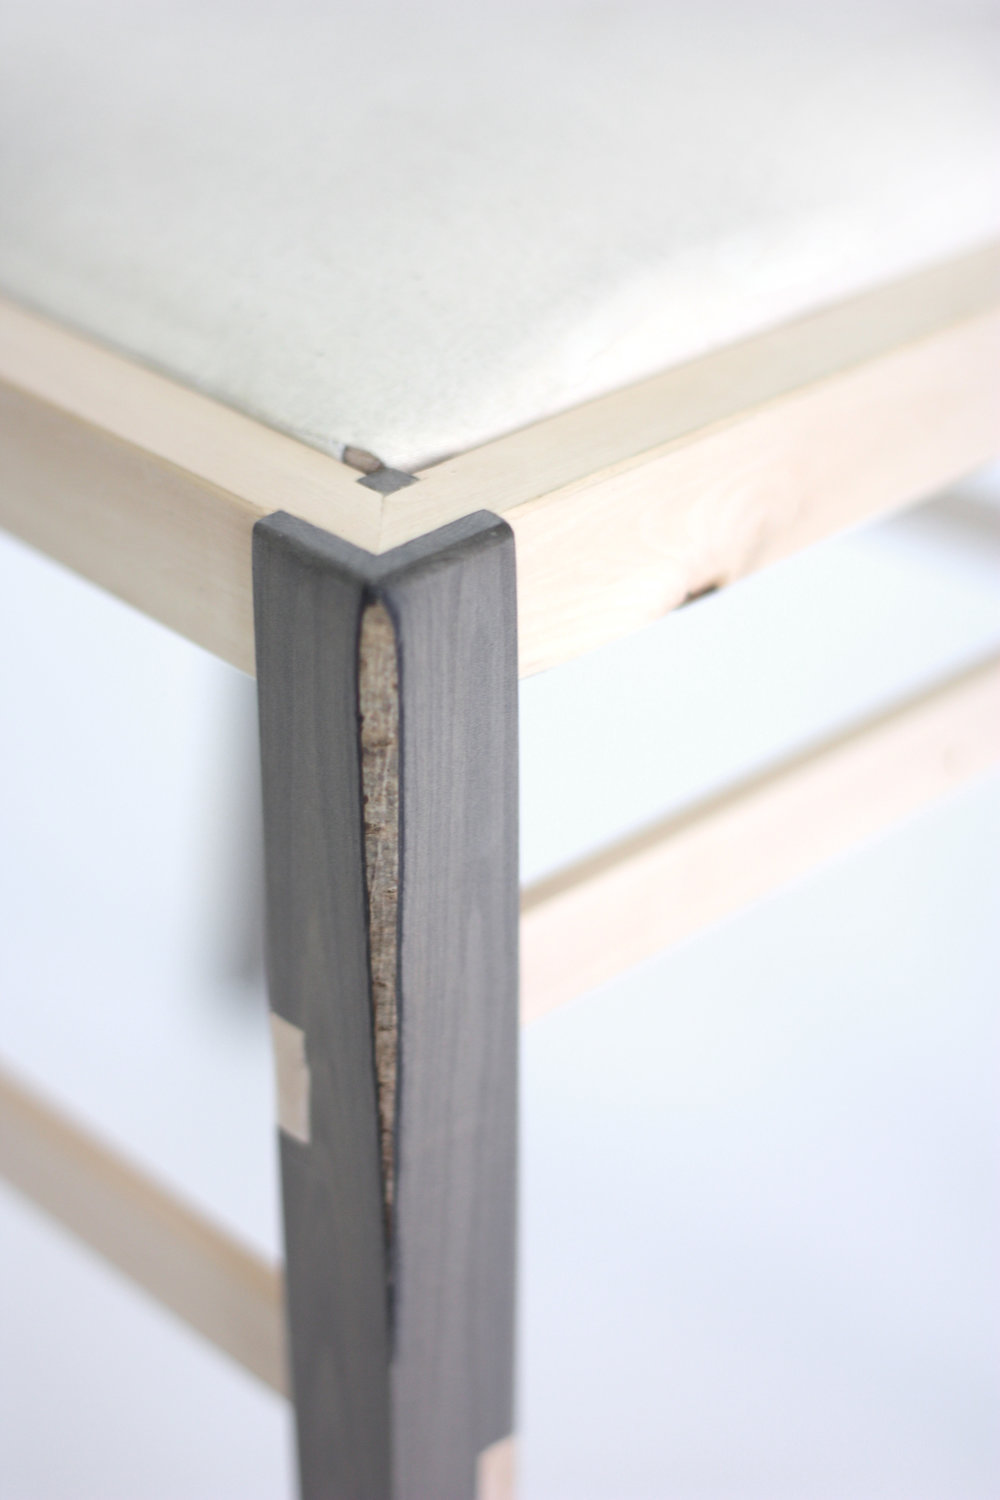 SEBASTIAN COX FURNITURE - 'SUENT' SUPERLIGHT CHAIR (GREY)(detail).jpg